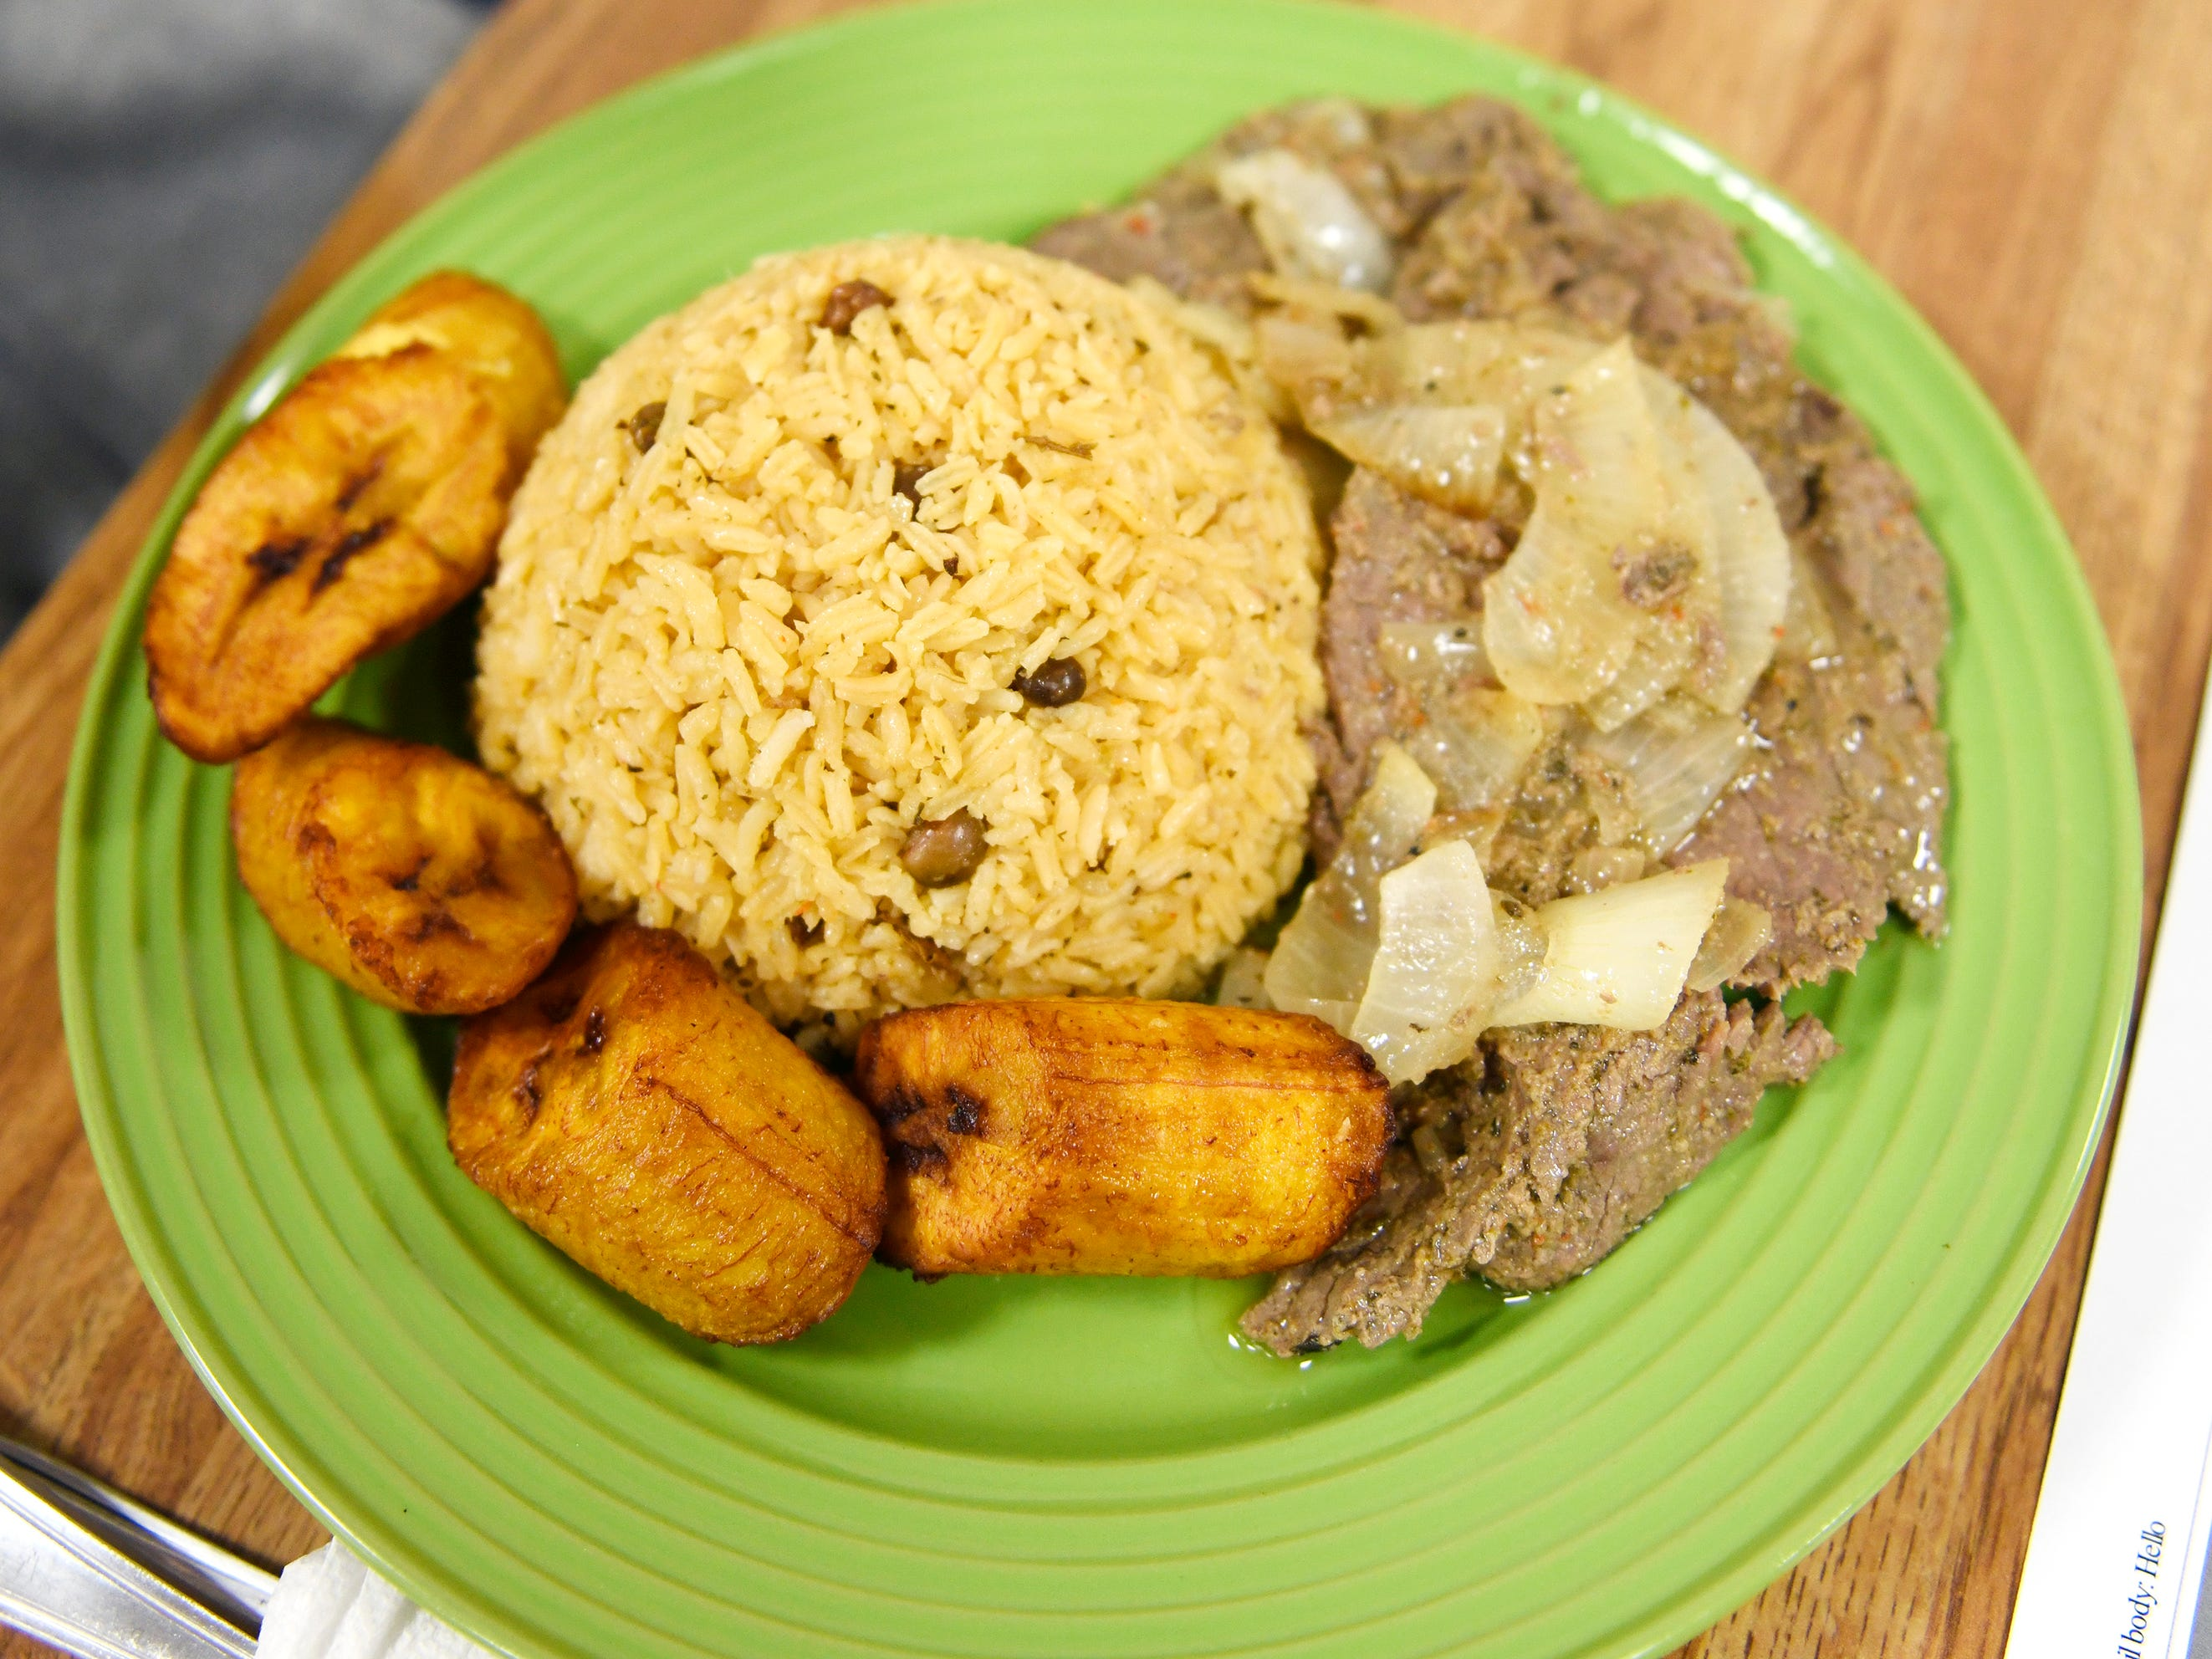 Criollo's steak and onions entree with rice and plantains pictured here on Wednesday, March 27, 2019.